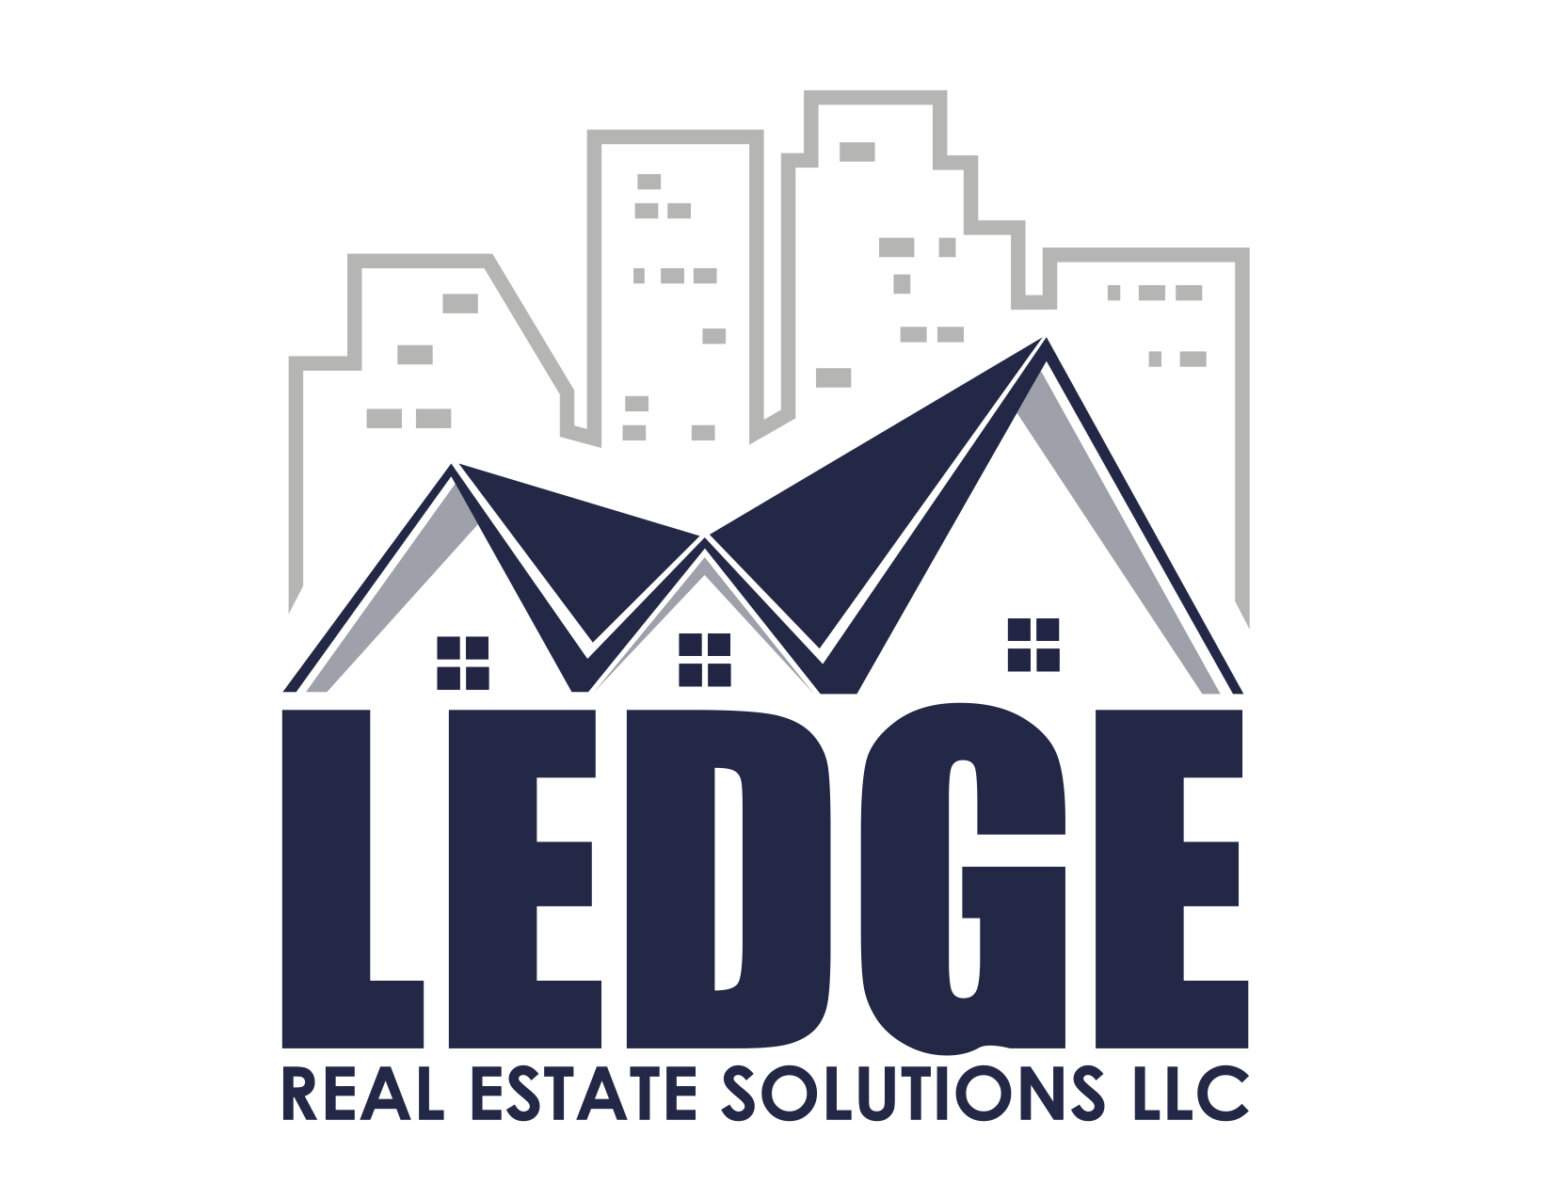 Ledge Buys Houses logo